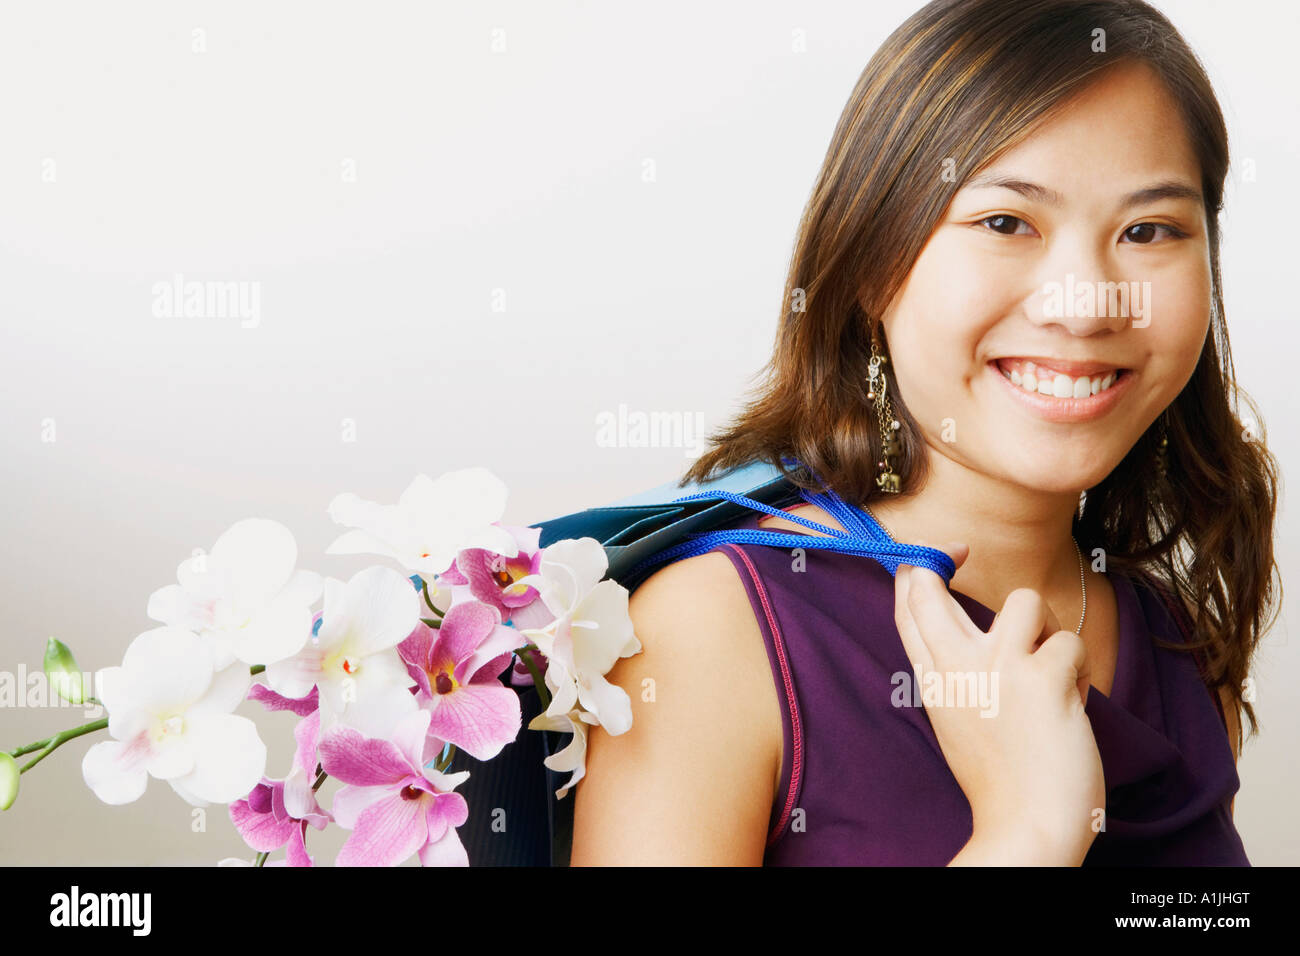 Portrait of a young woman carrying flowers in a shopping bag - Stock Image